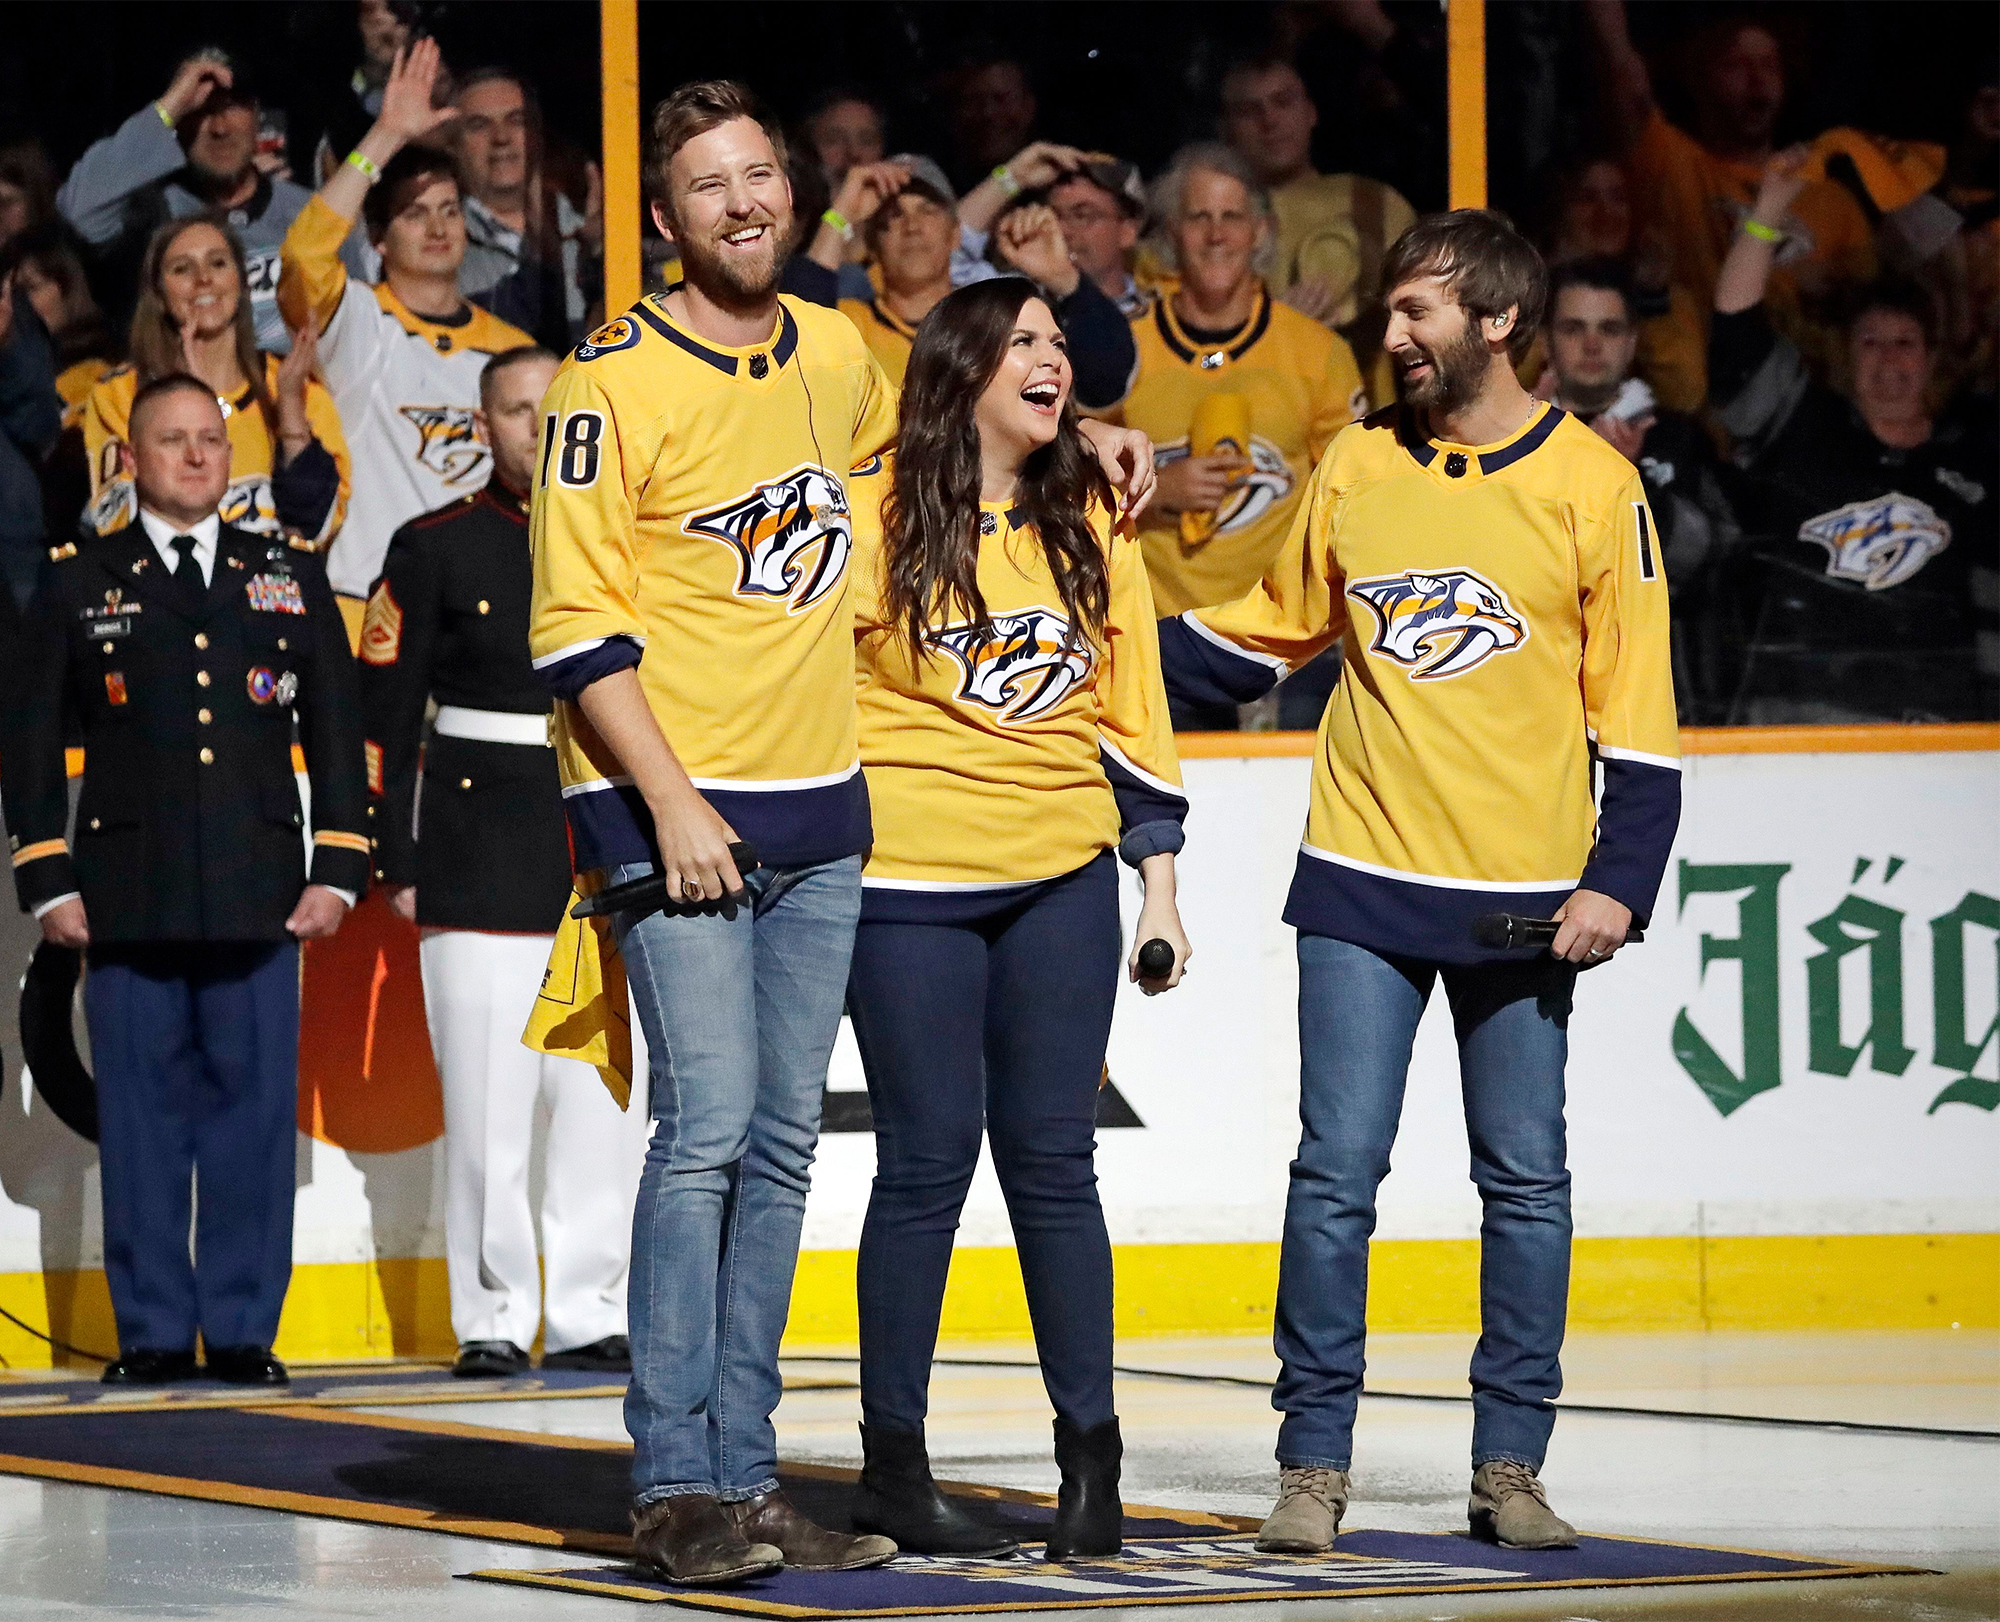 Jets Predators Hockey, Nashville, USA - 05 May 2018